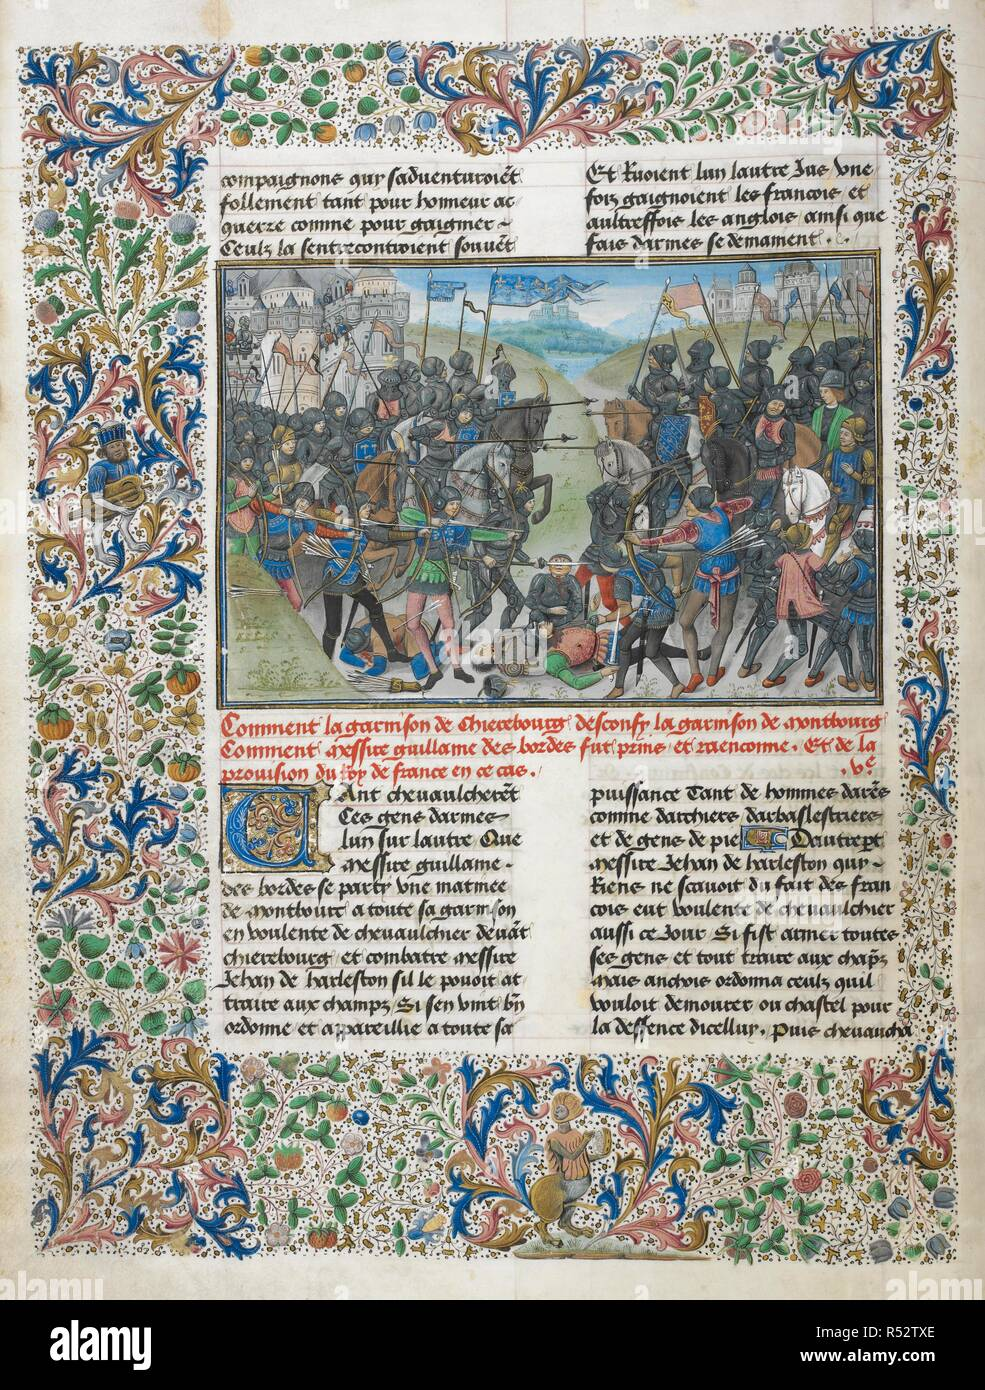 Fight of the garrisons of Cherbourg and Montebourg. Anciennes et nouvelles chroniques d'Angleterre (also known as Recueil des croniques d'Engleterre). France, N. E. (Lille?) and Netherlands, S. (Bruges) Date c. 1470- c. 1480. Source: Royal 14 E. IV, f.14v. Language: French. Author: WAVRIN, JEAN DE. Seigneur de Forestel. - Stock Image